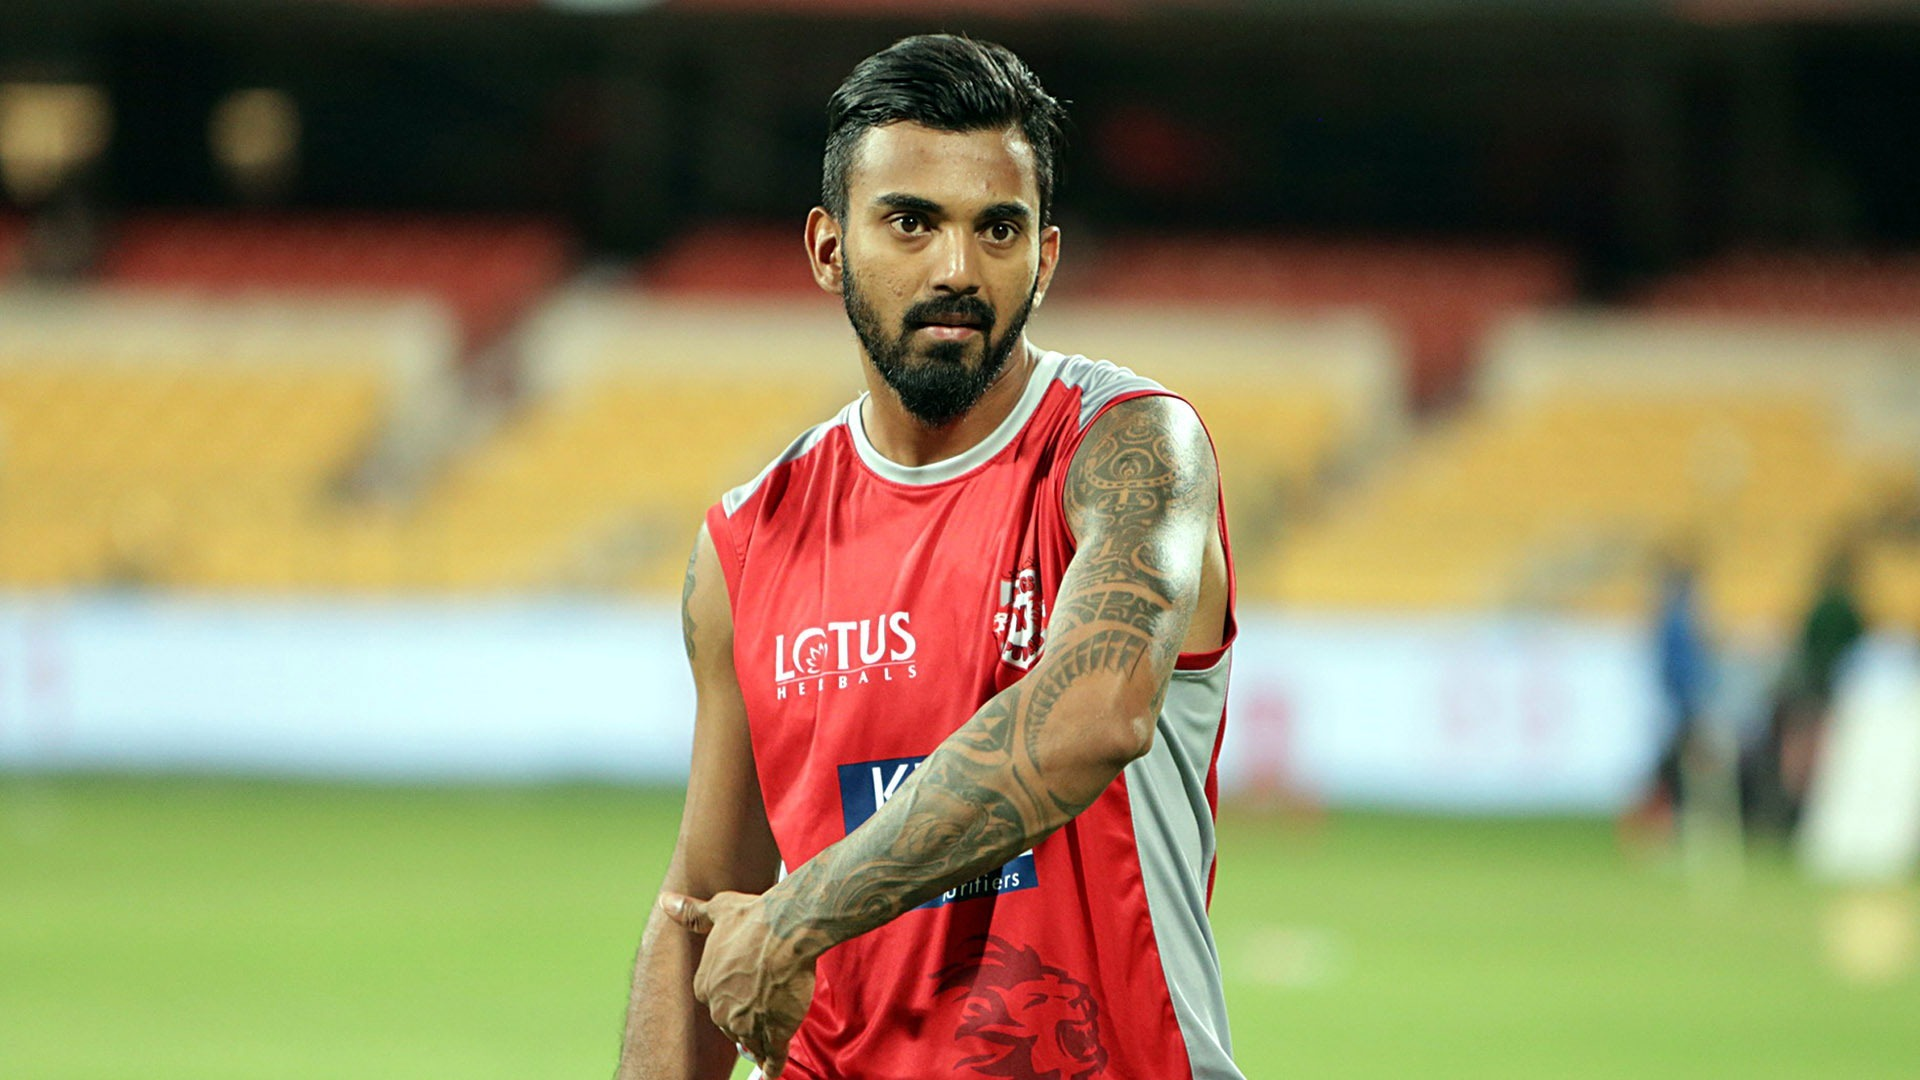 KL Rahul responded in one of the sweetest ways when a fan called him Thala